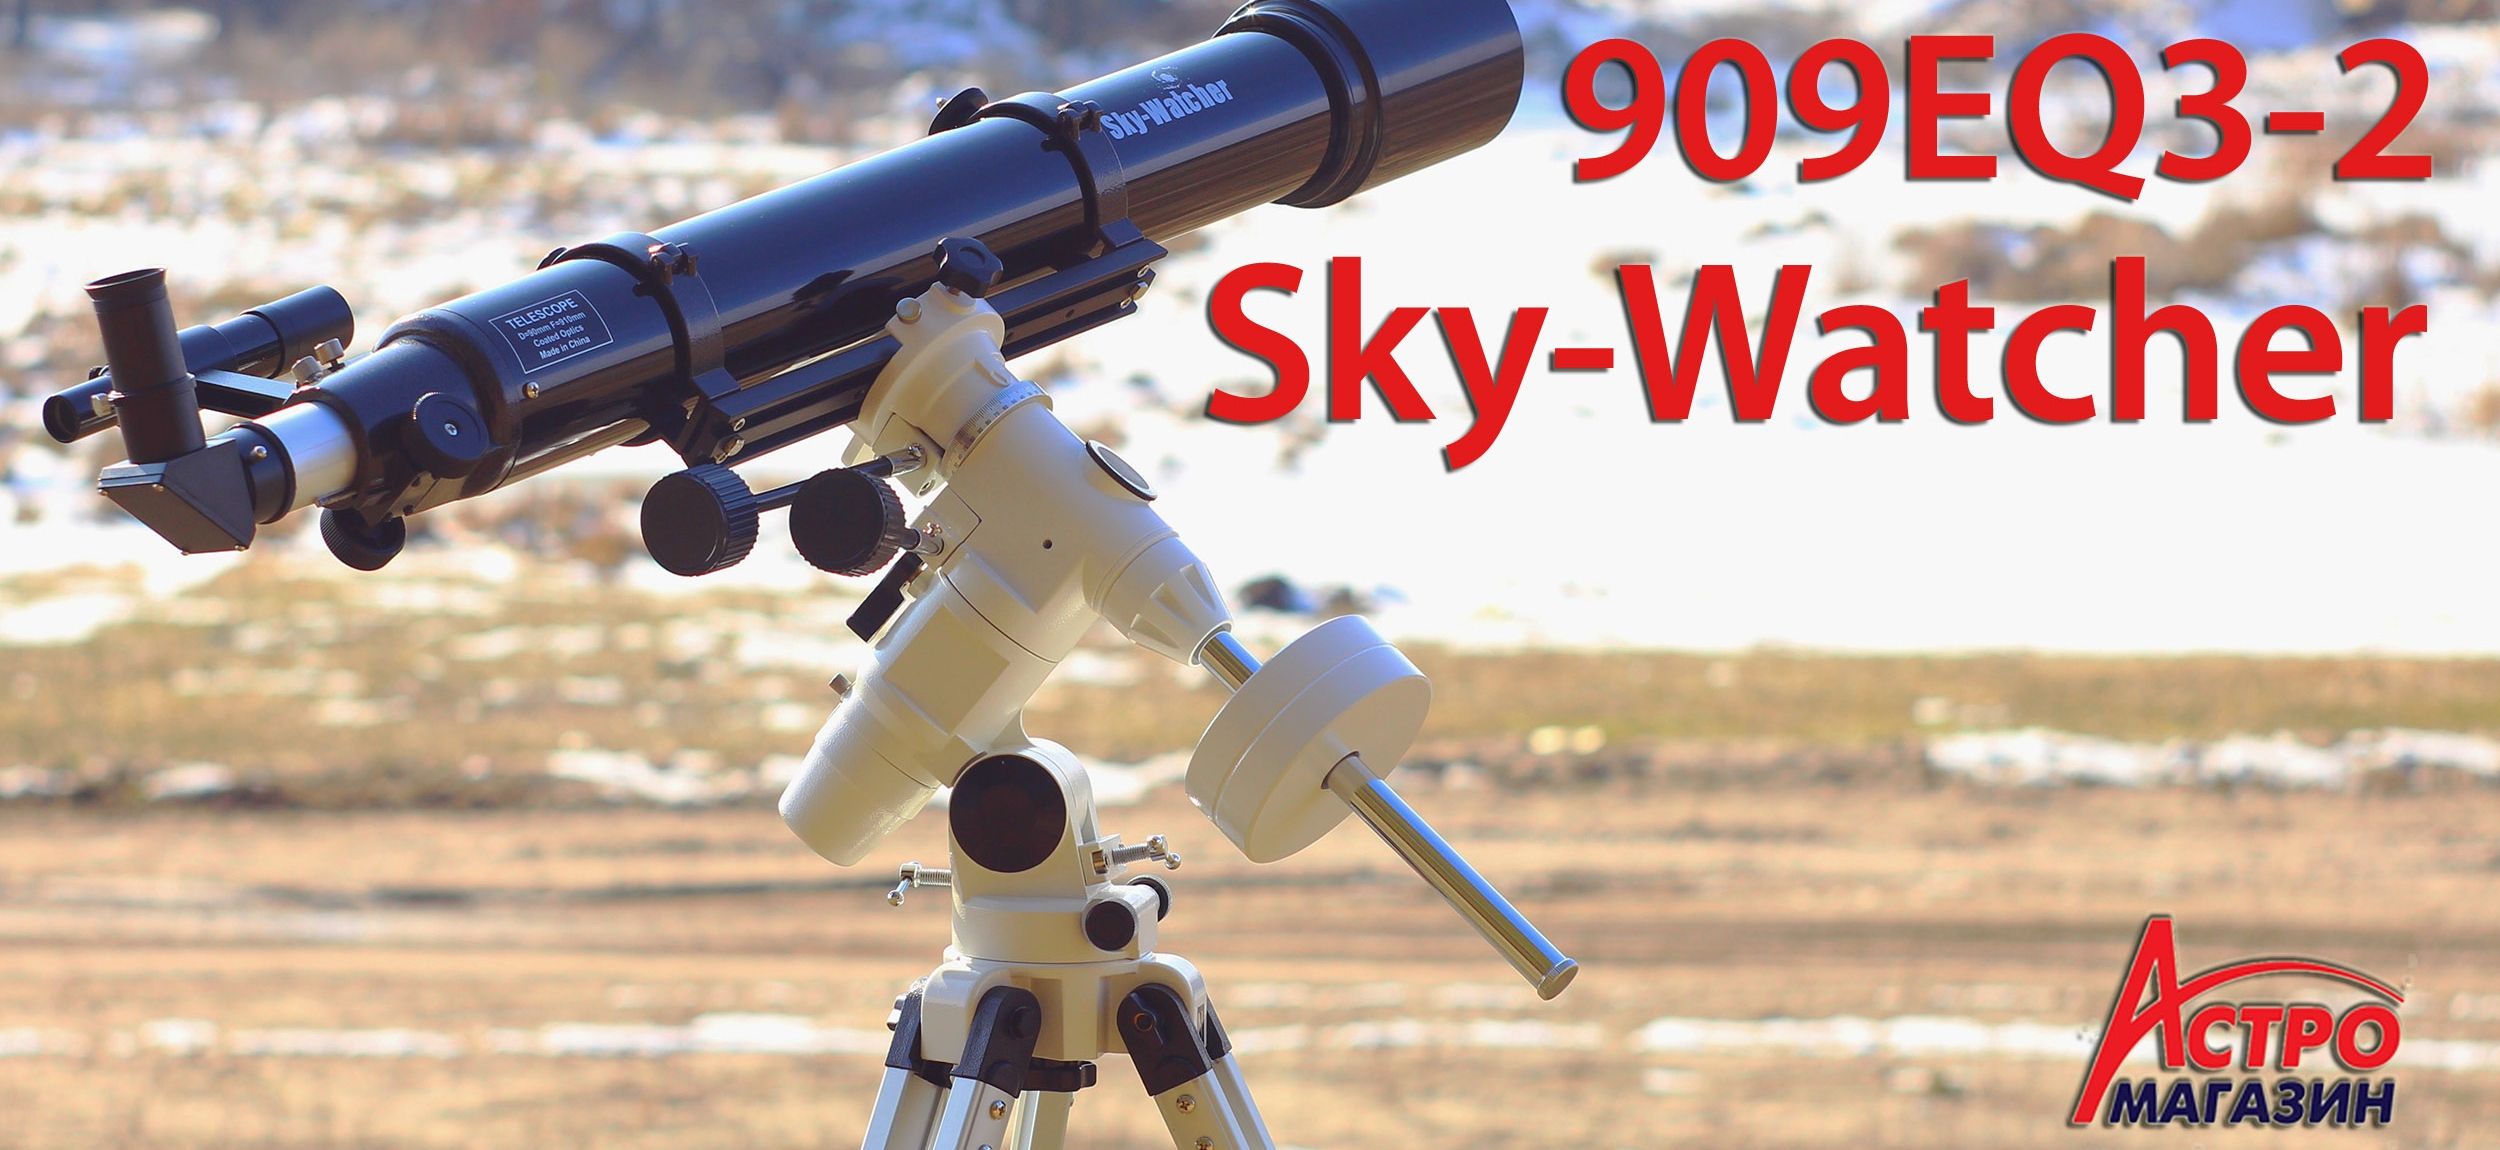 Обзор телескопа Sky Watcher 909 EQ3-2